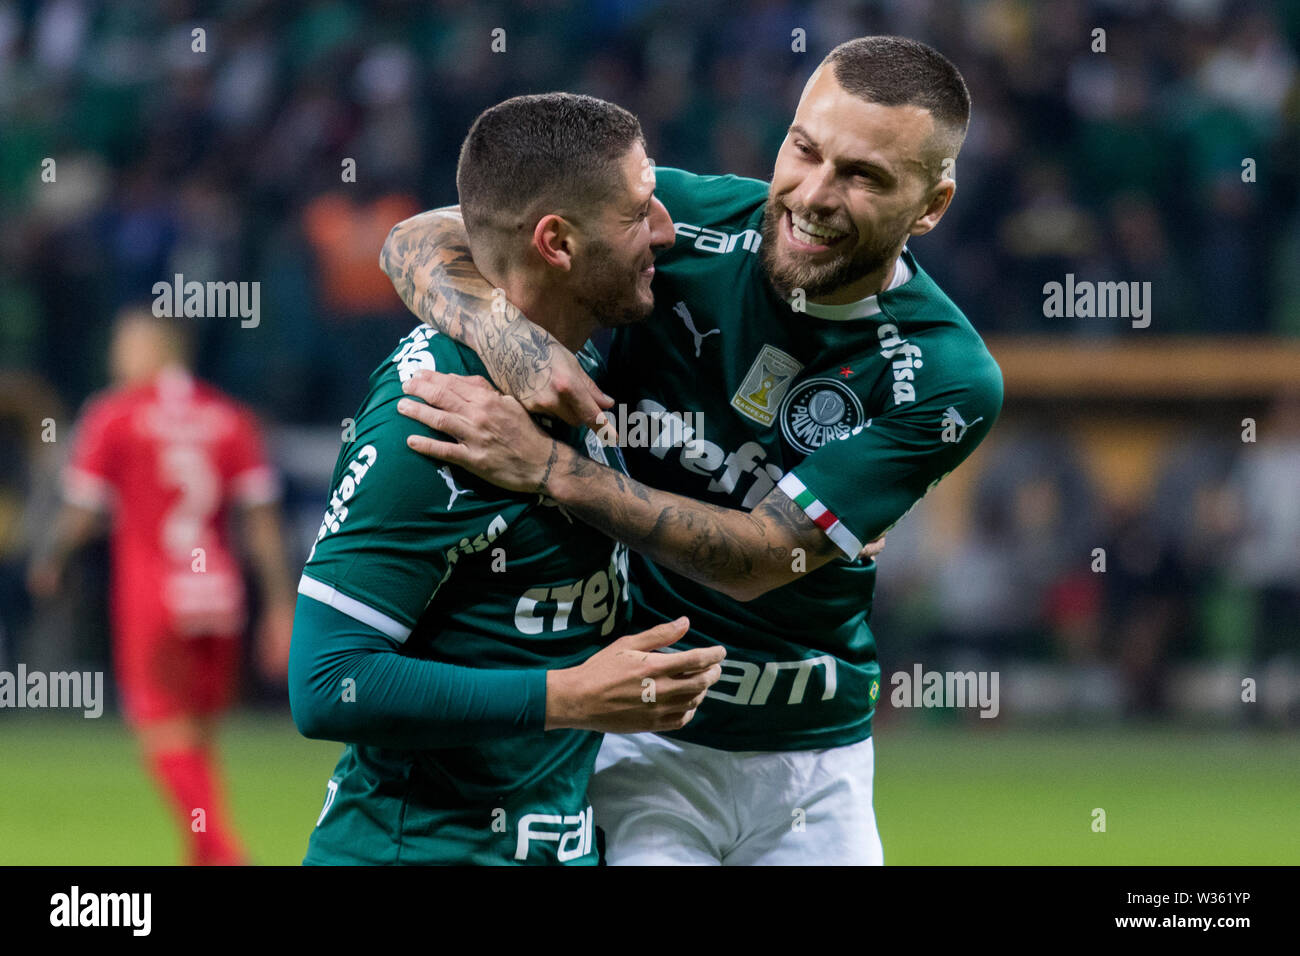 Zé Rafael, a Palmeiras player, celebrates his goal during a match between Palmeiras and Internacional, validated by the quarterfinals of the Continent Stock Photo